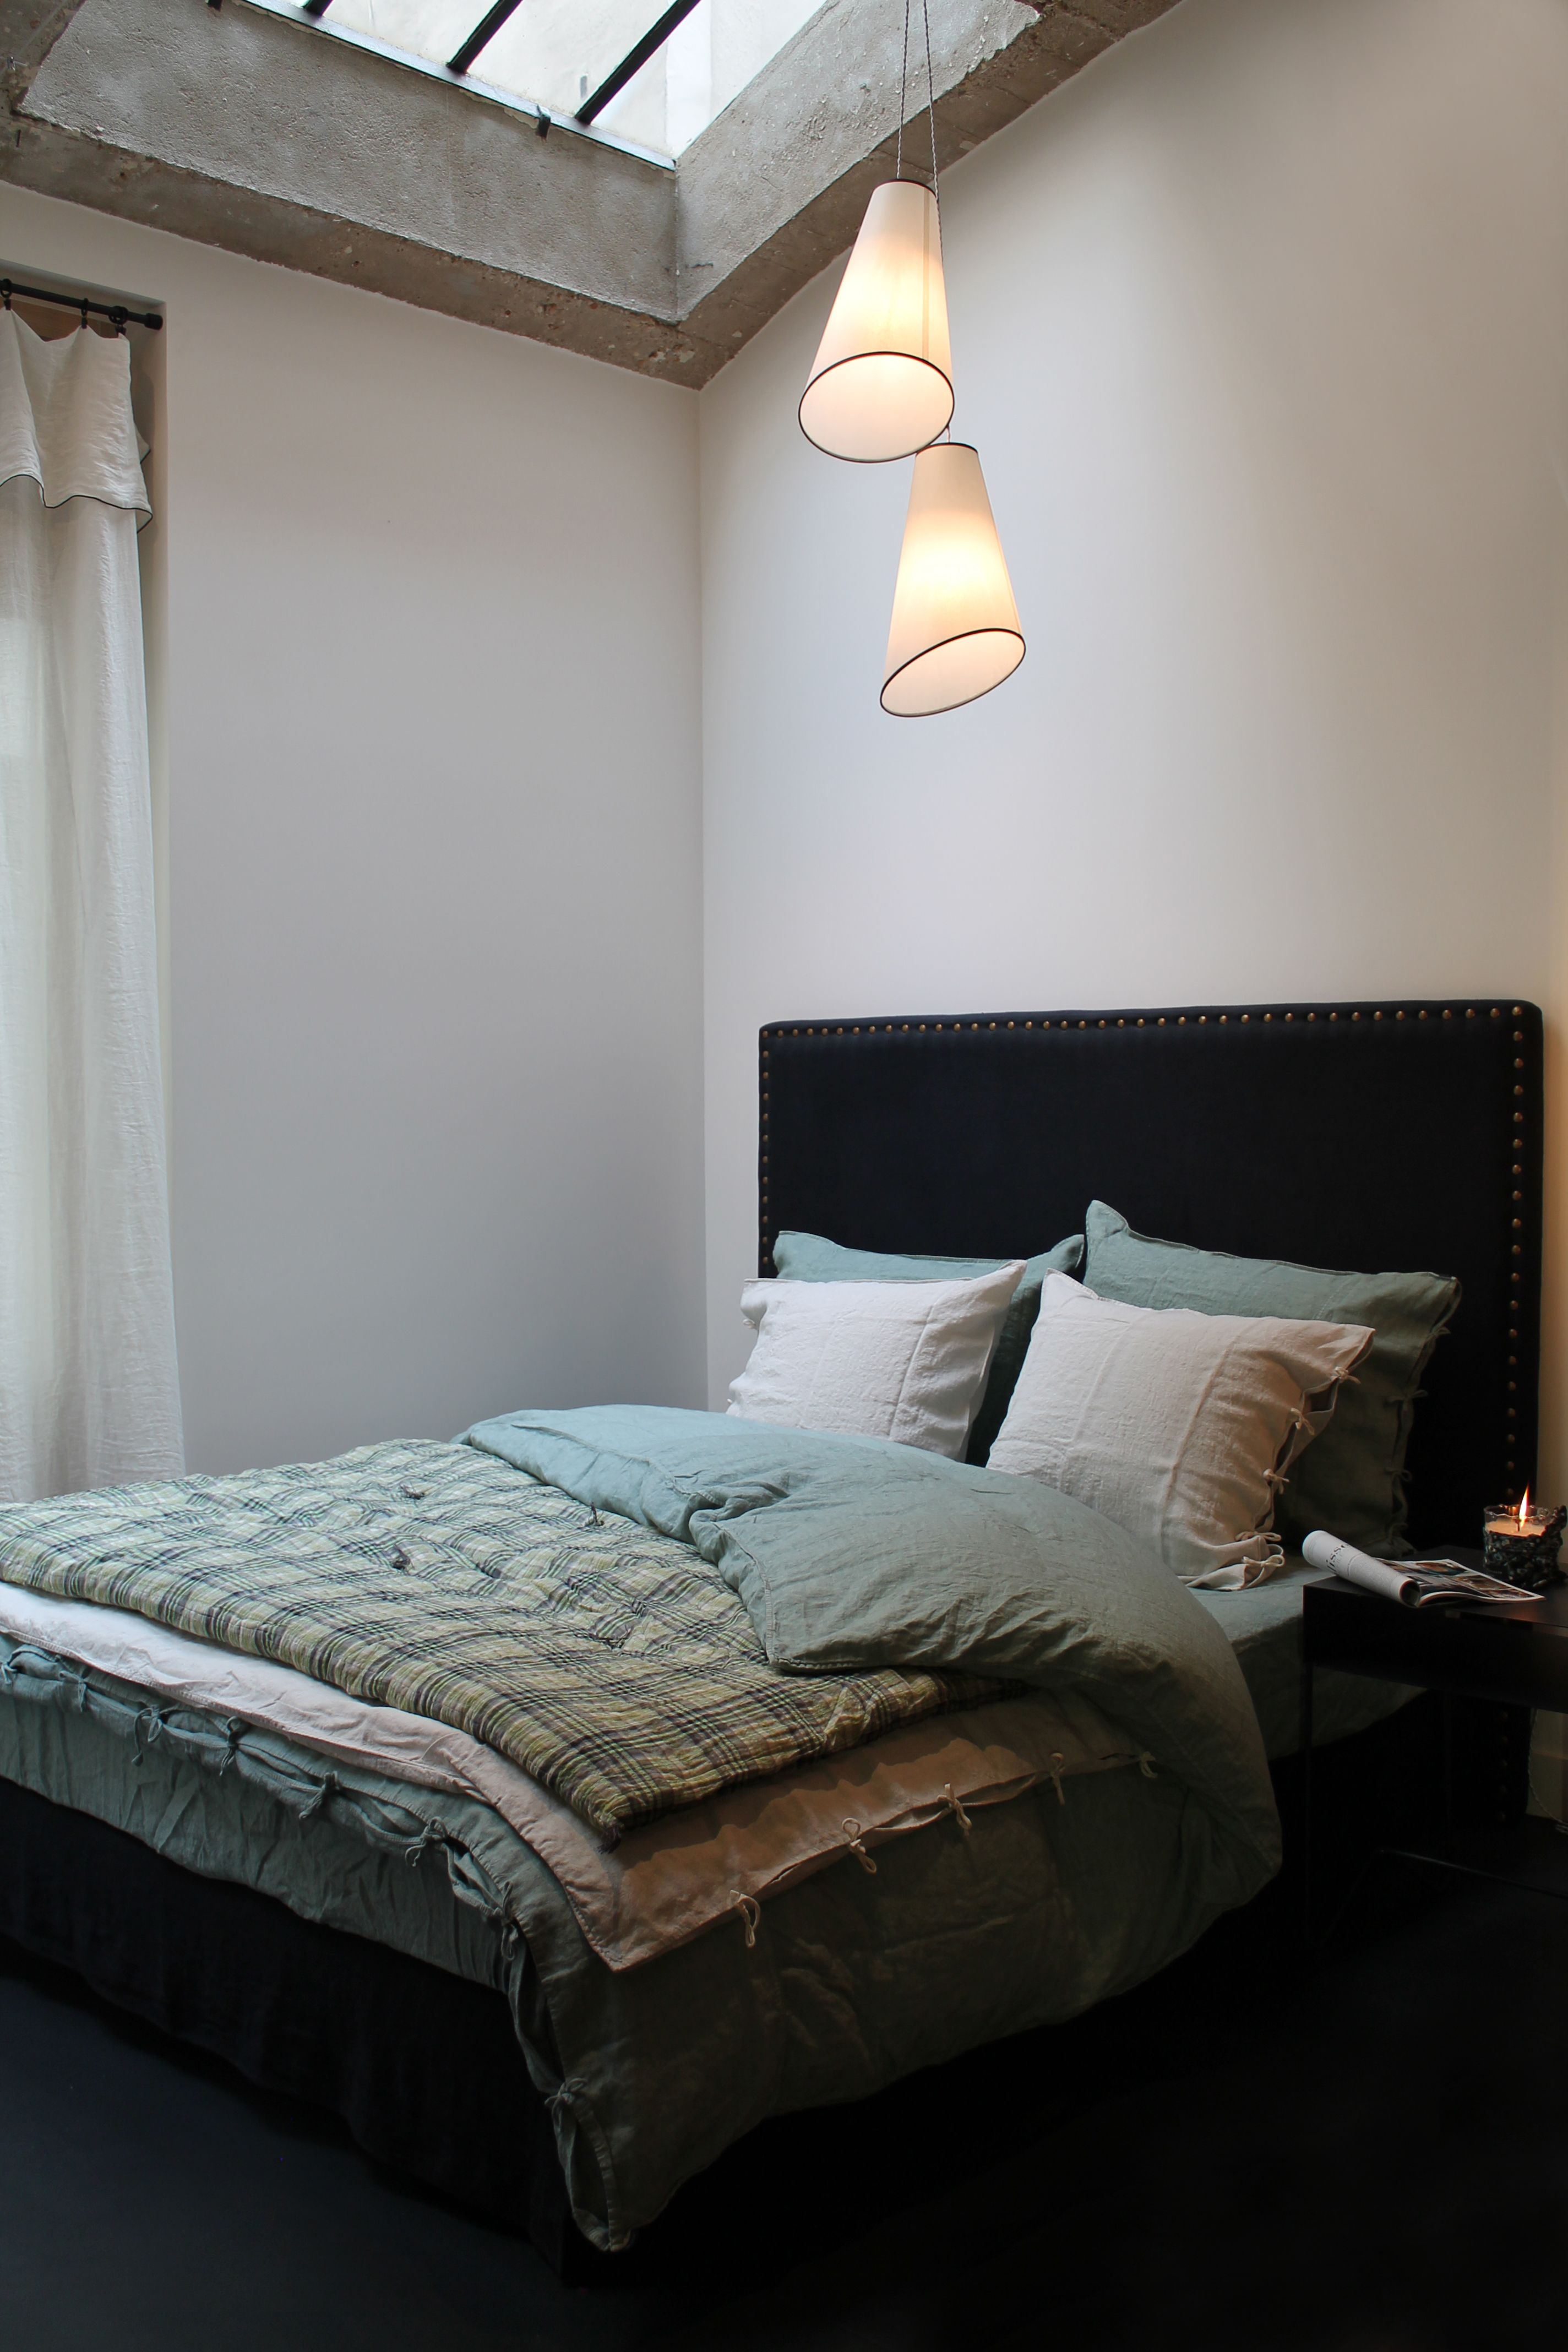 Bed inspiration at the Caravane saint germain store.  Linen and soft cotton.